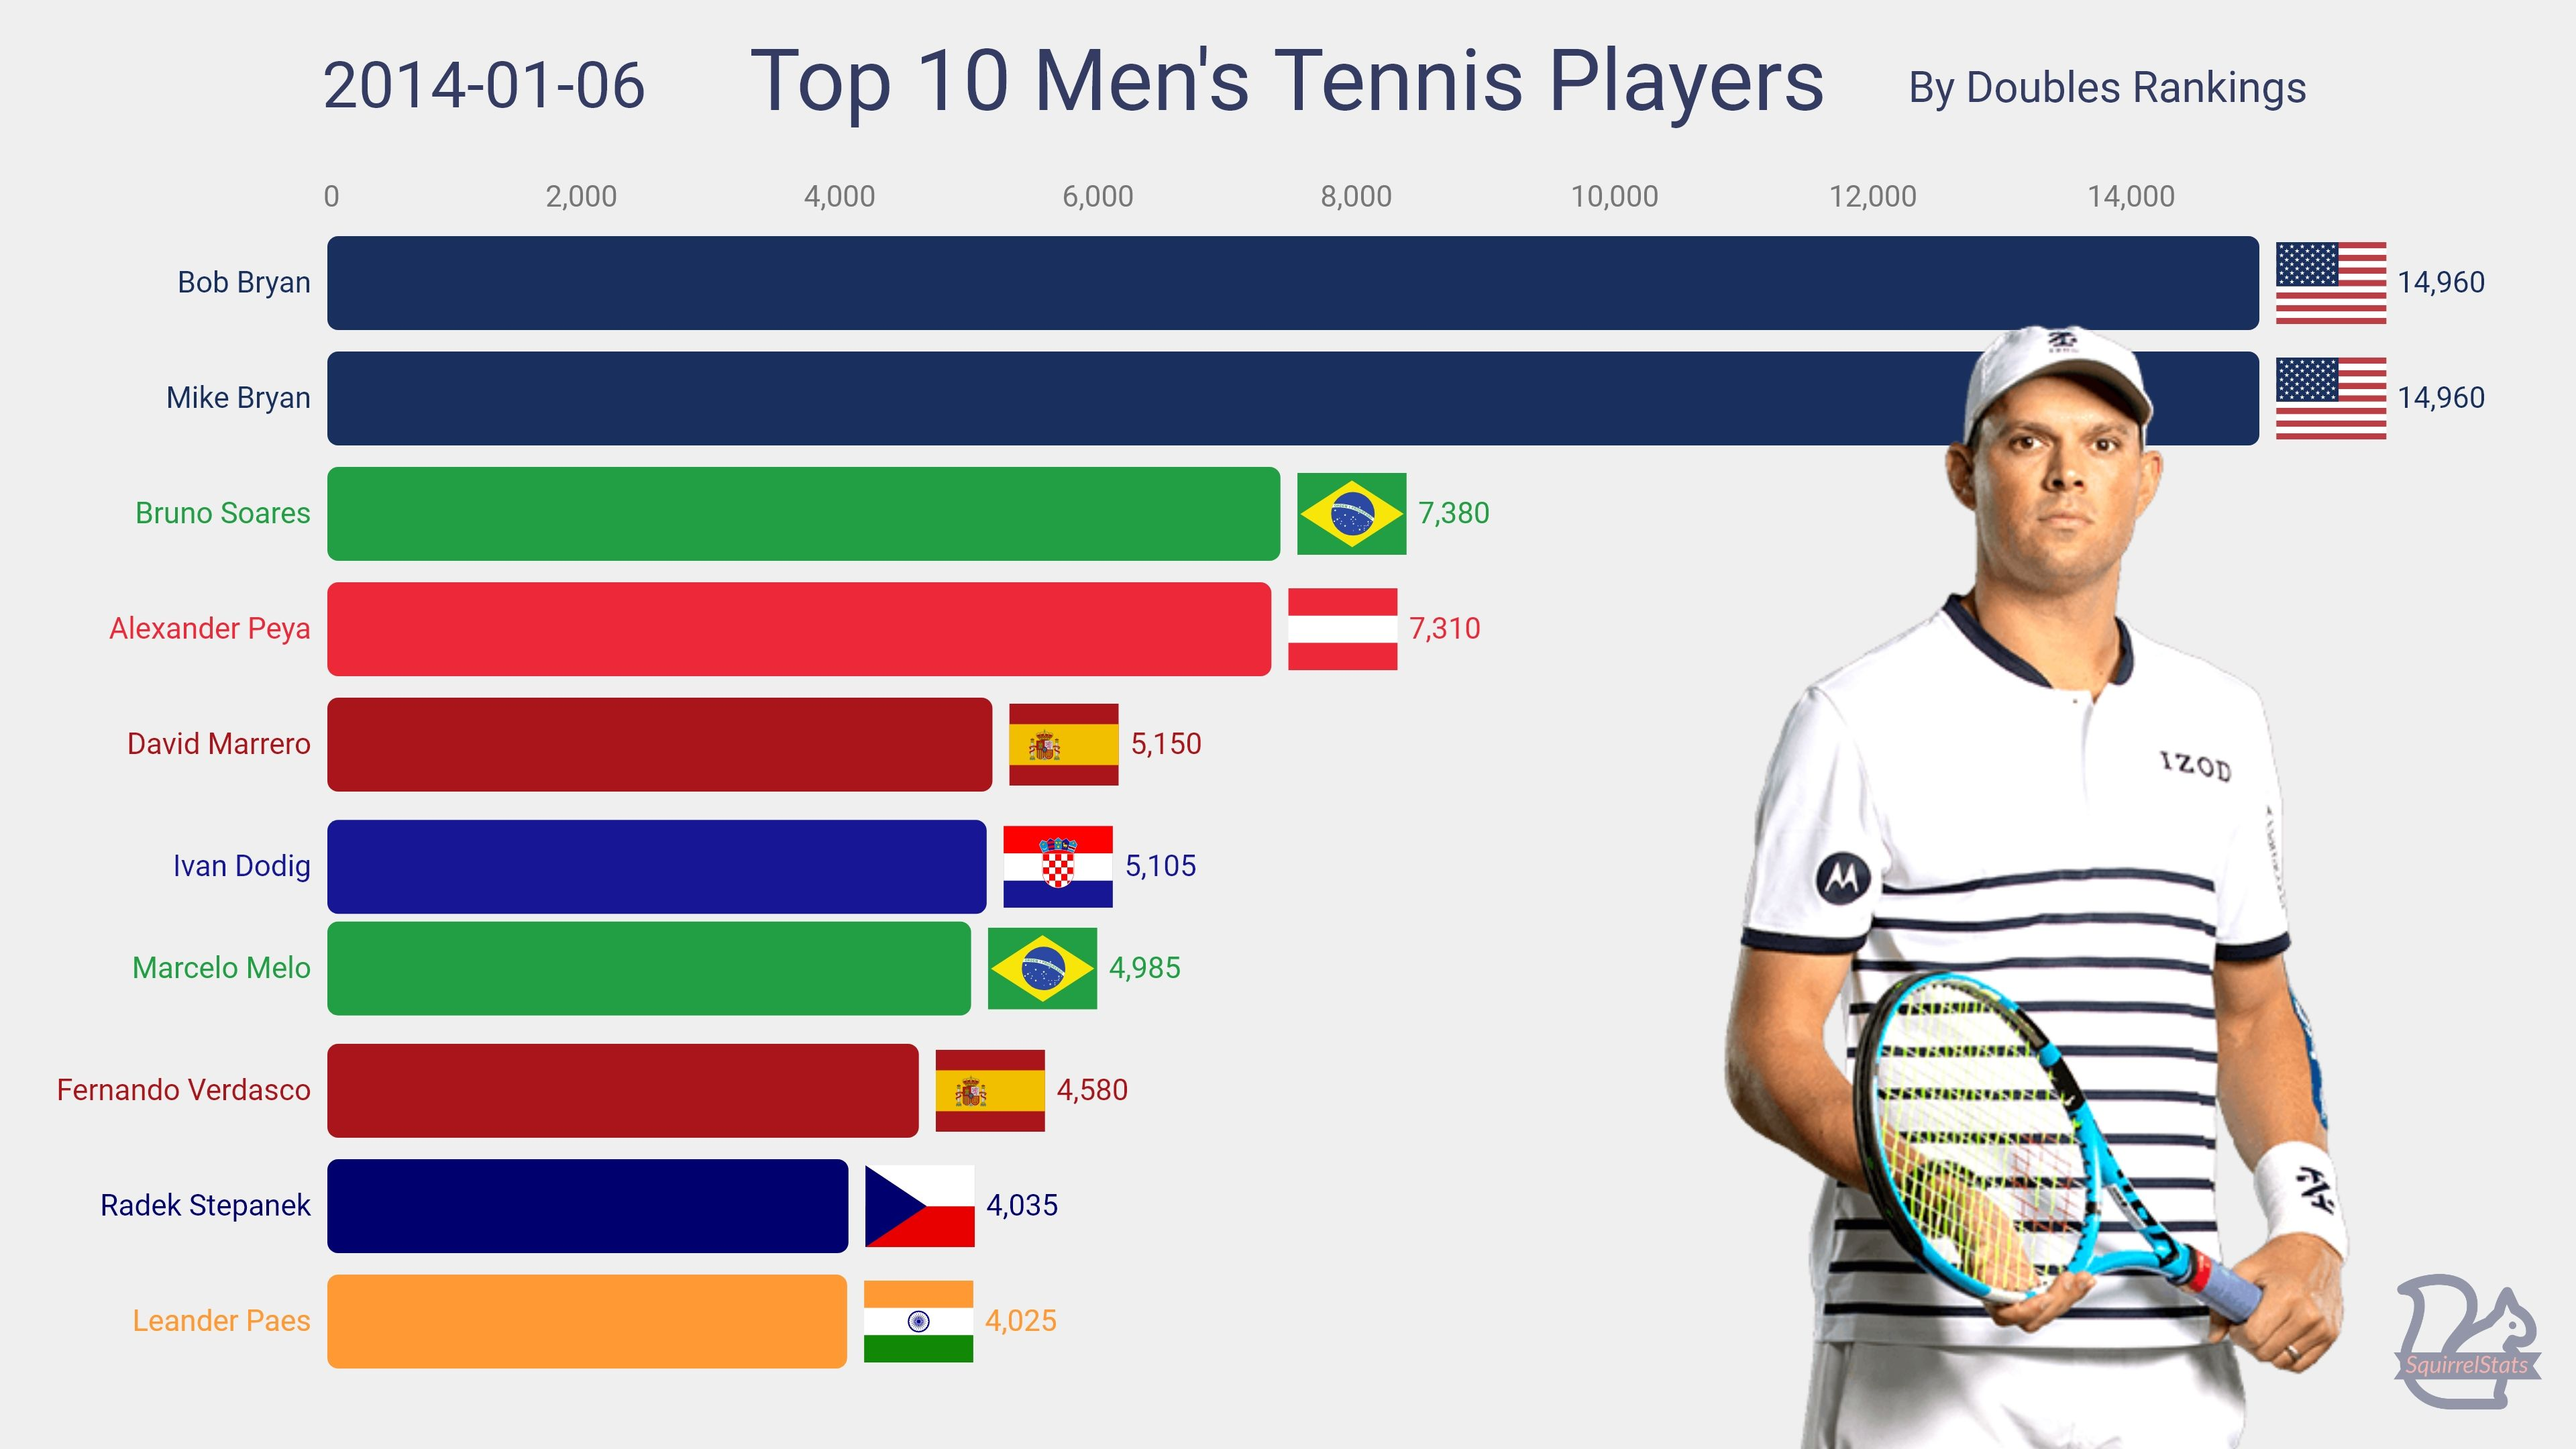 Top 10 Men S Tennis Players By Doubles Rankings 1996 2020 In 2020 Tennis Players Mens Tennis Tennis